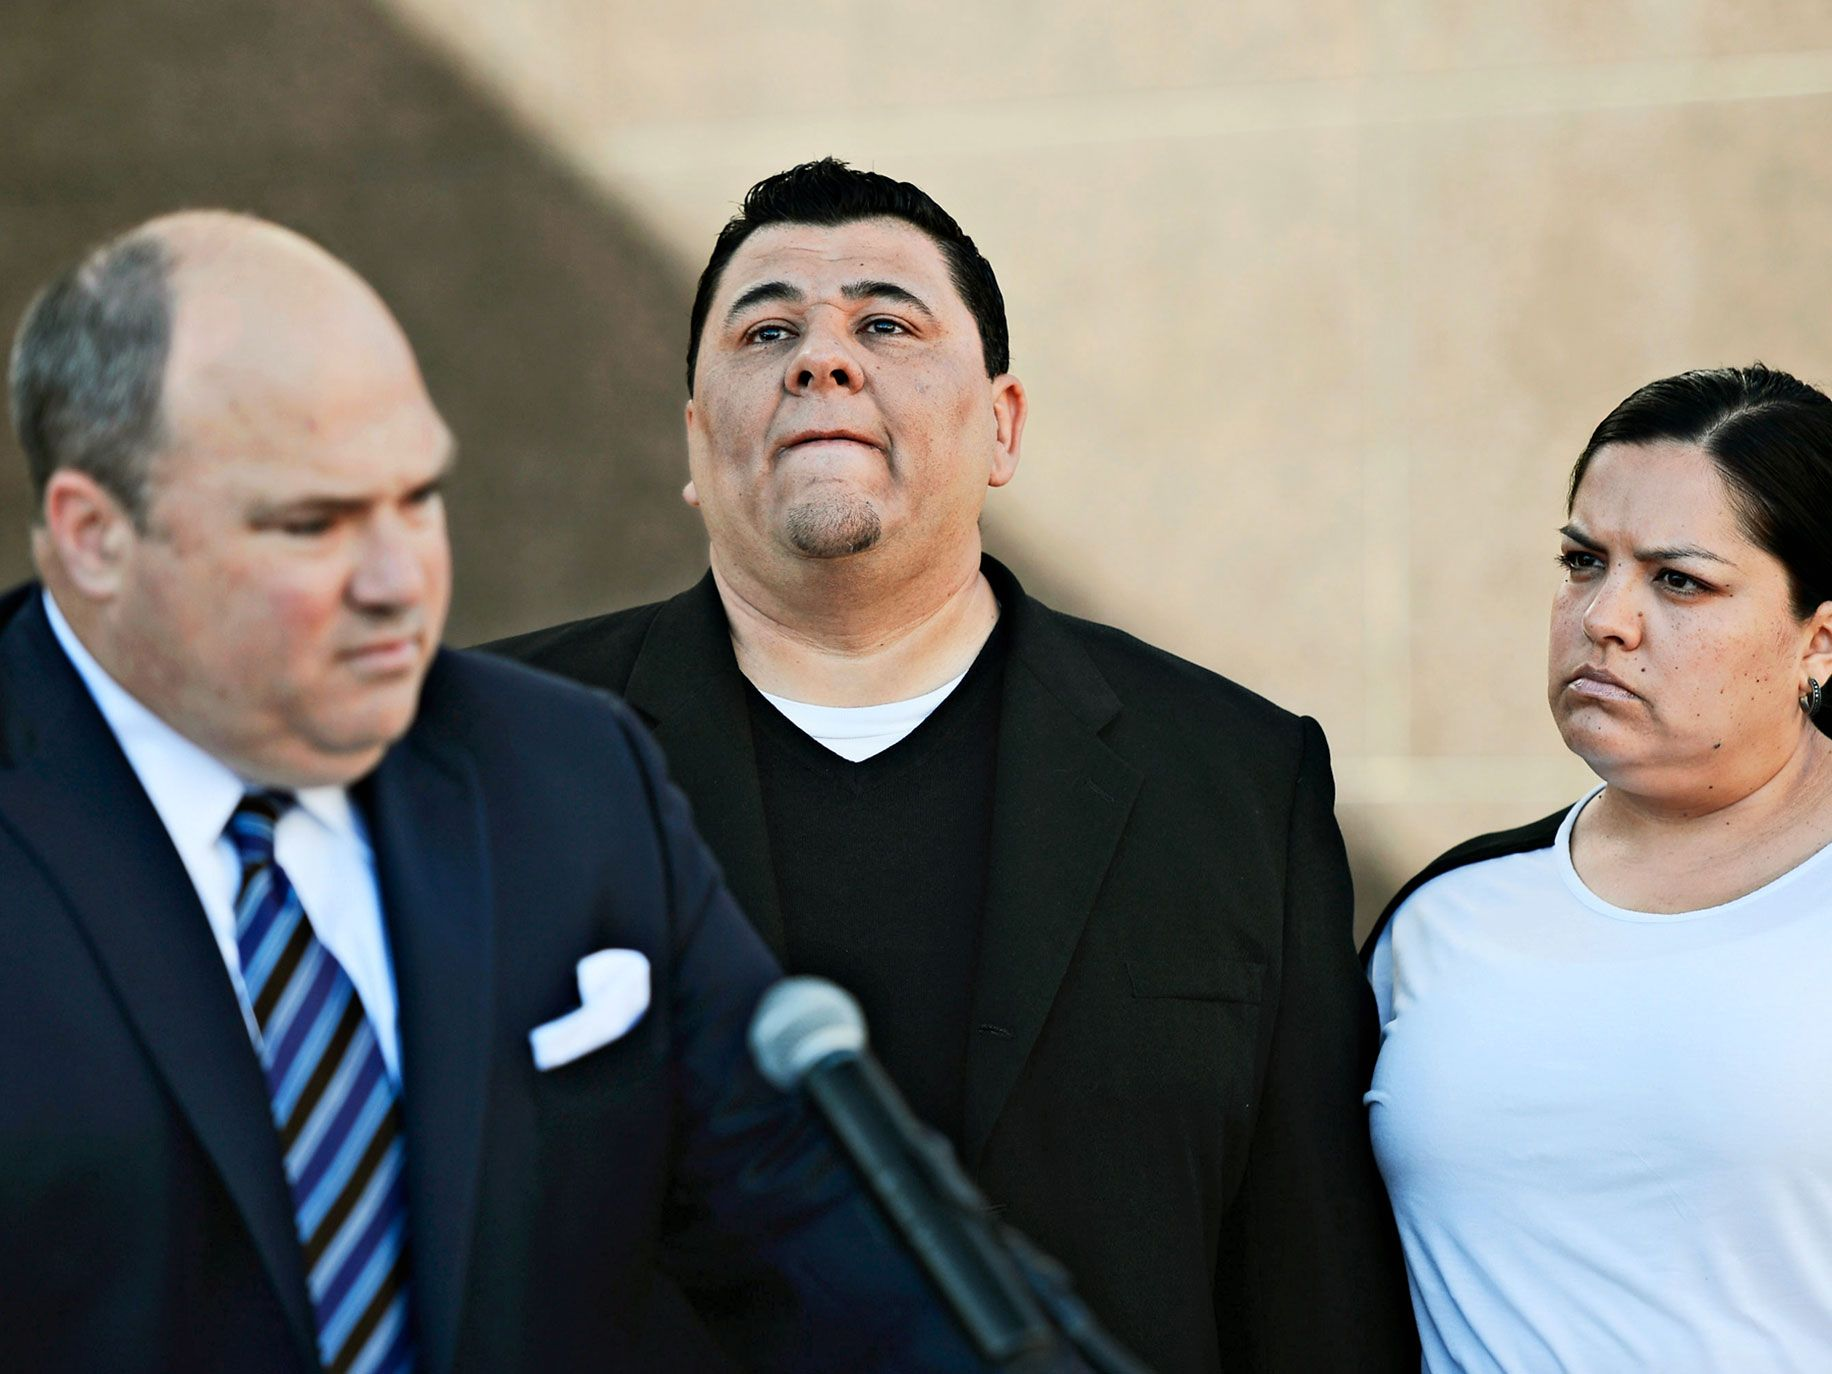 John Manly won nearly $1 million for Michael Duran (center) in a sex abuse settlement with the Roman Catholic Archdiocese of Los Angeles in 2013. Duran was one of four men who reached a nearly $10 million settlement against the Los Angeles Archdiocese, Cardinal Roger Mahony and ex-priest Michael Baker.